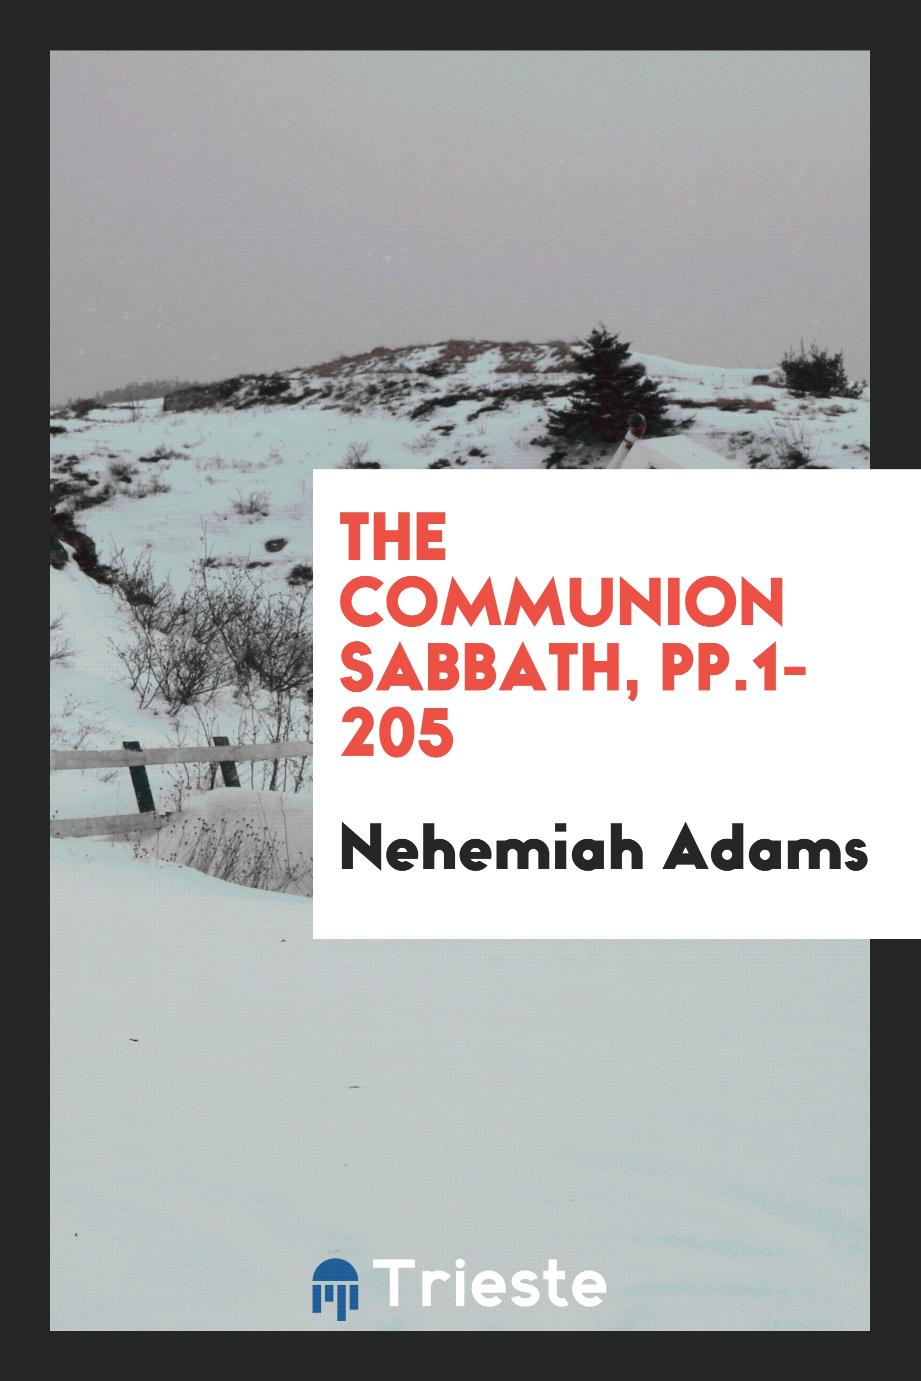 The Communion Sabbath, pp.1-205